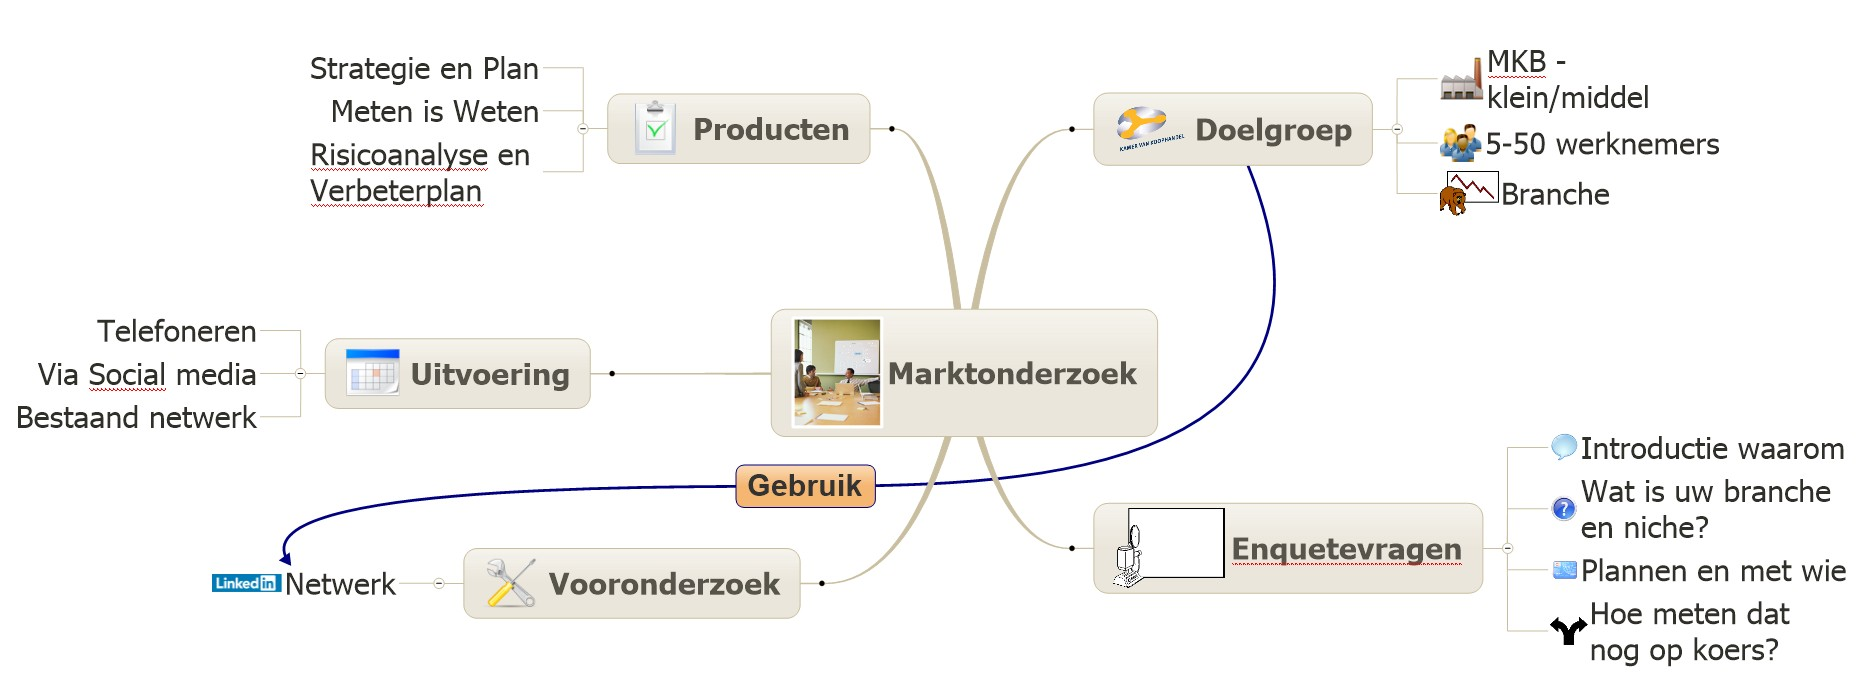 Visualincrease marktonderzoek Mindmap